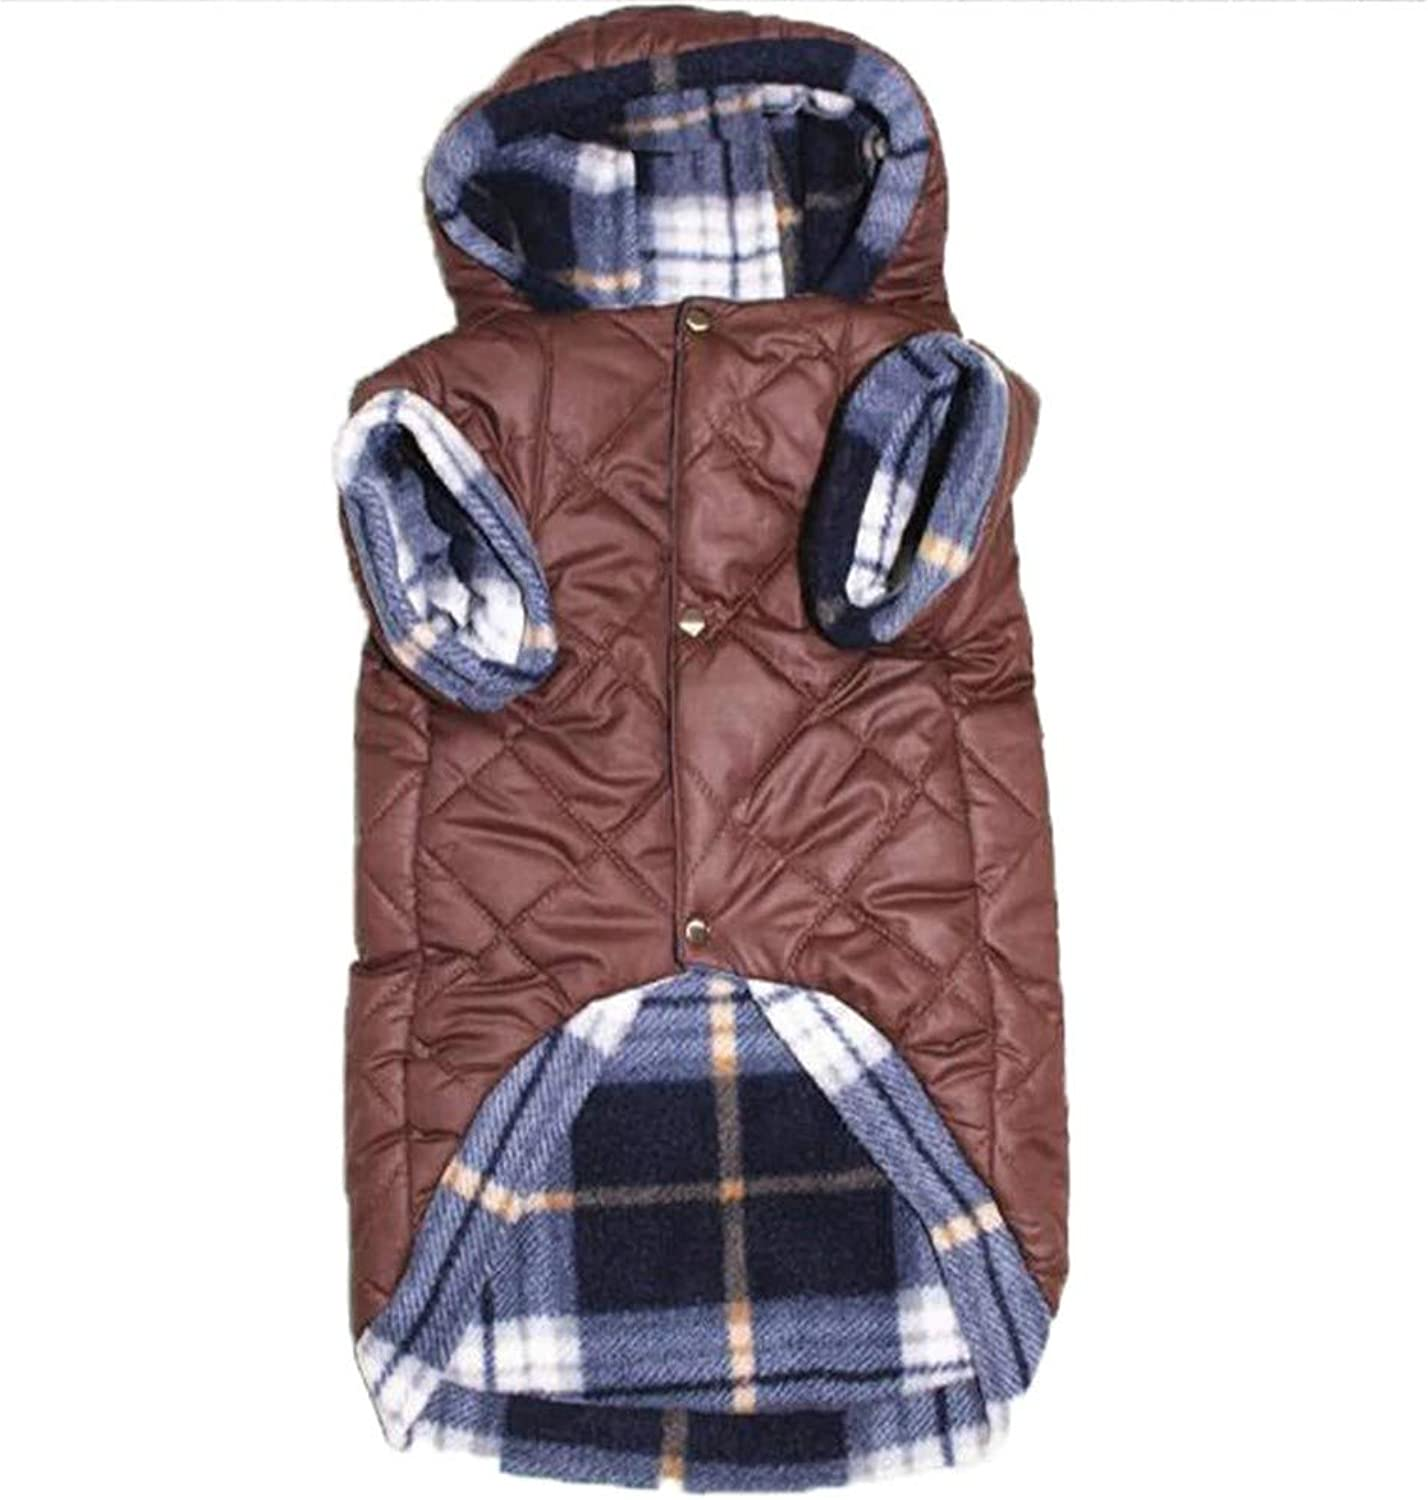 AITU Ropa Para Mascotas Warm Puppy Wearing Pet Clothes In DoubleSided Clothes